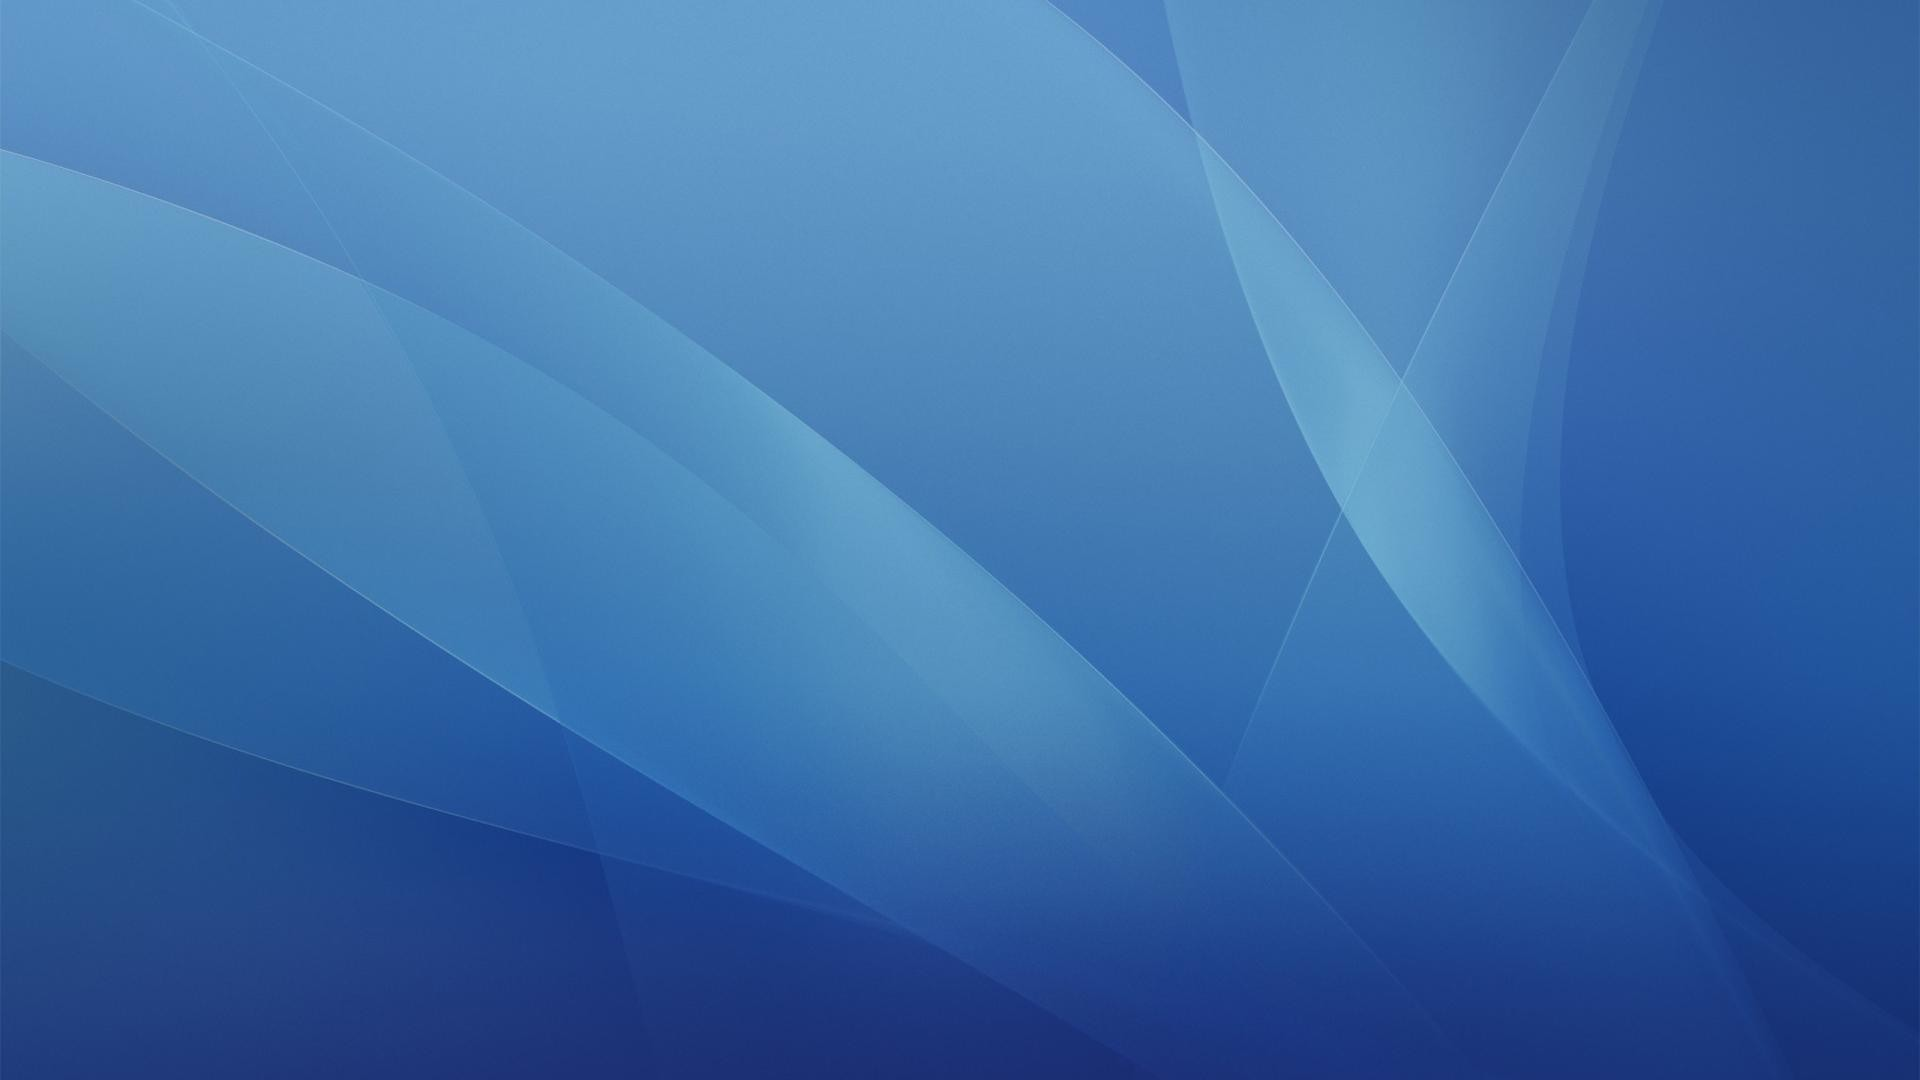 abstract Blue texture wallpaper background wide wallpapers:1280×800,1440×900,1680×1050  – hd